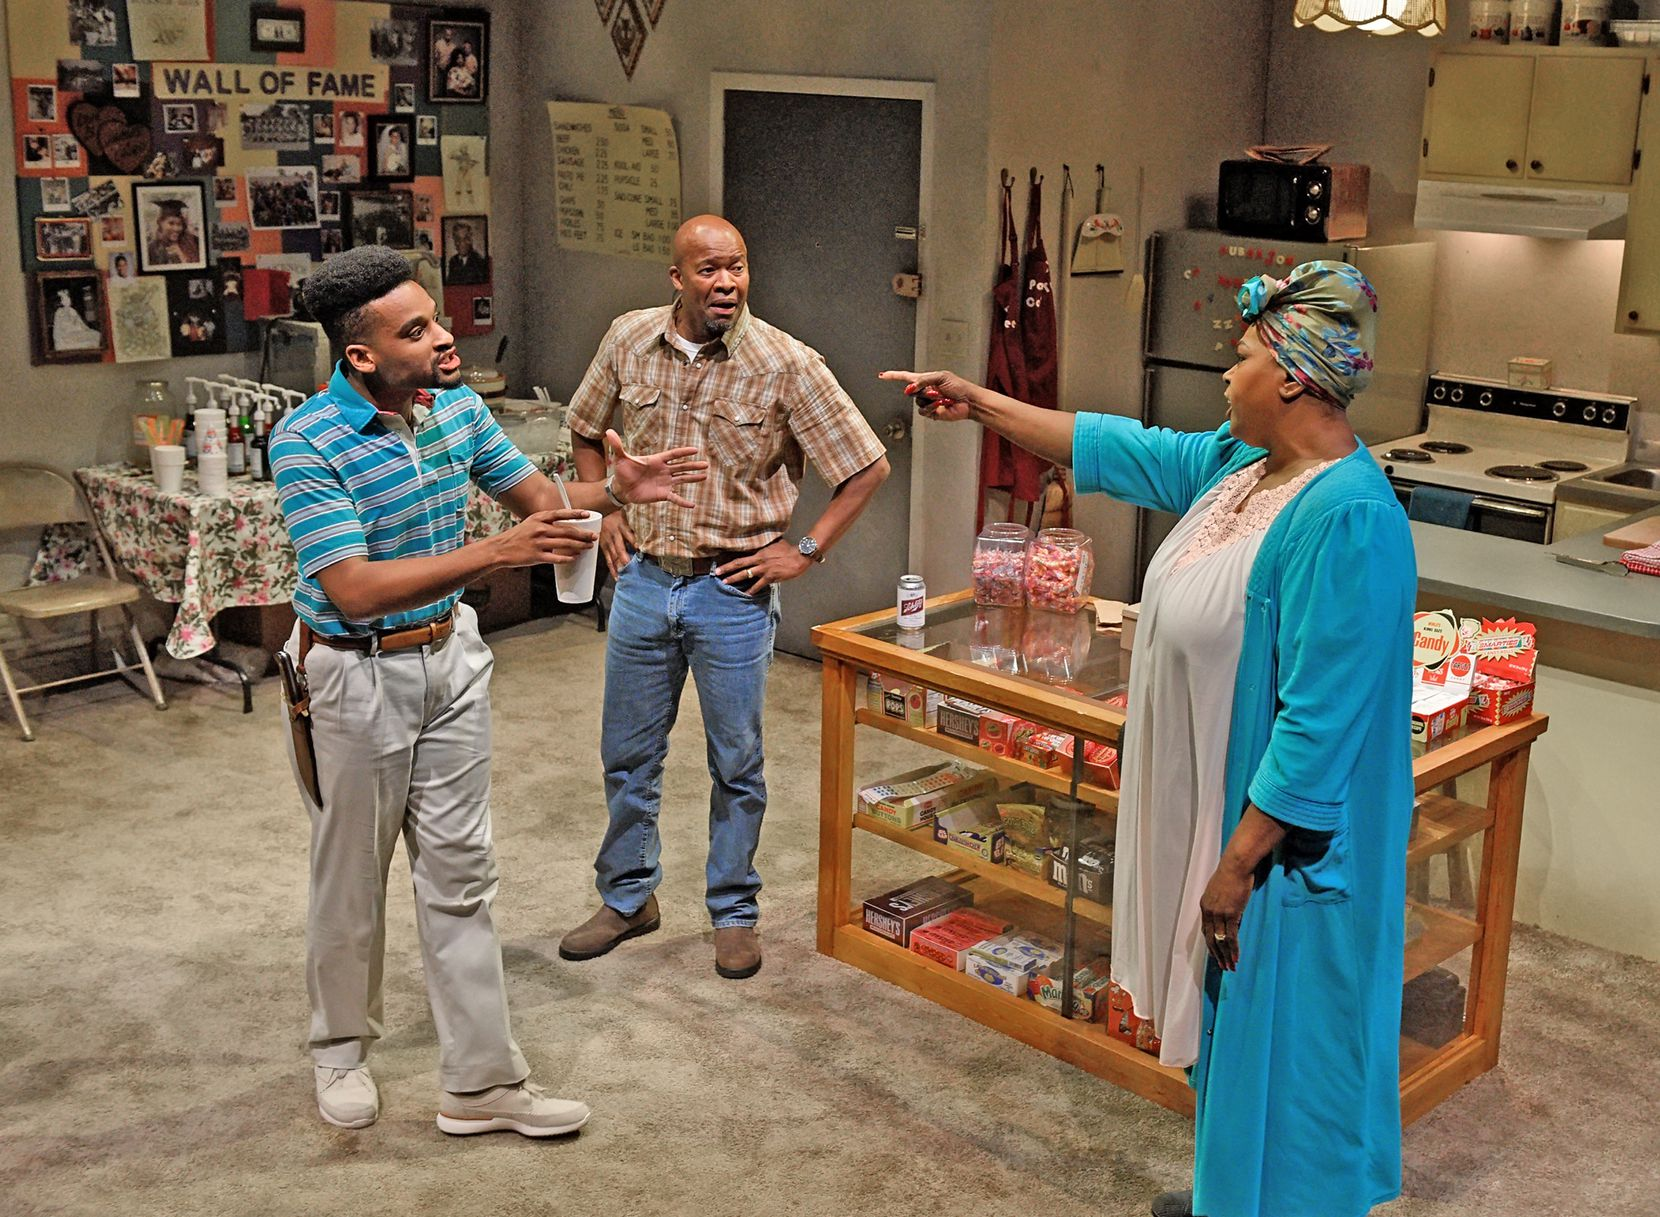 Ace Anderson (left), Leon Addison Brown and Liz Mikel star in Penny Candy at Dallas Theater Center. Trouble spreads among the characters as crack invades their Pleasant Grove neighborhood.